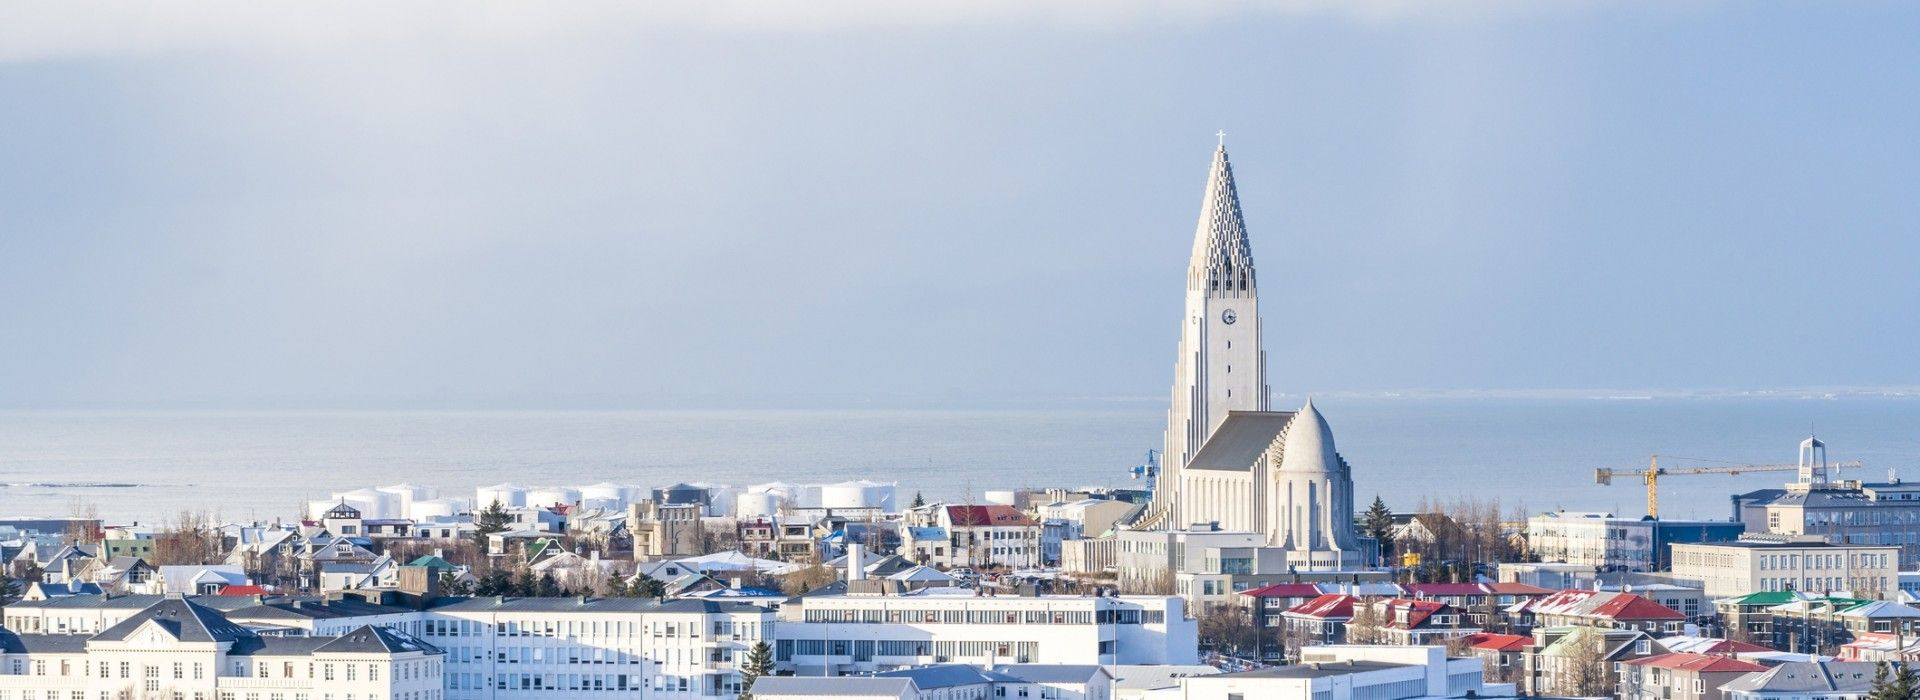 Travelling Reykjavik - Tours and Holiday Packages in Reykjavik